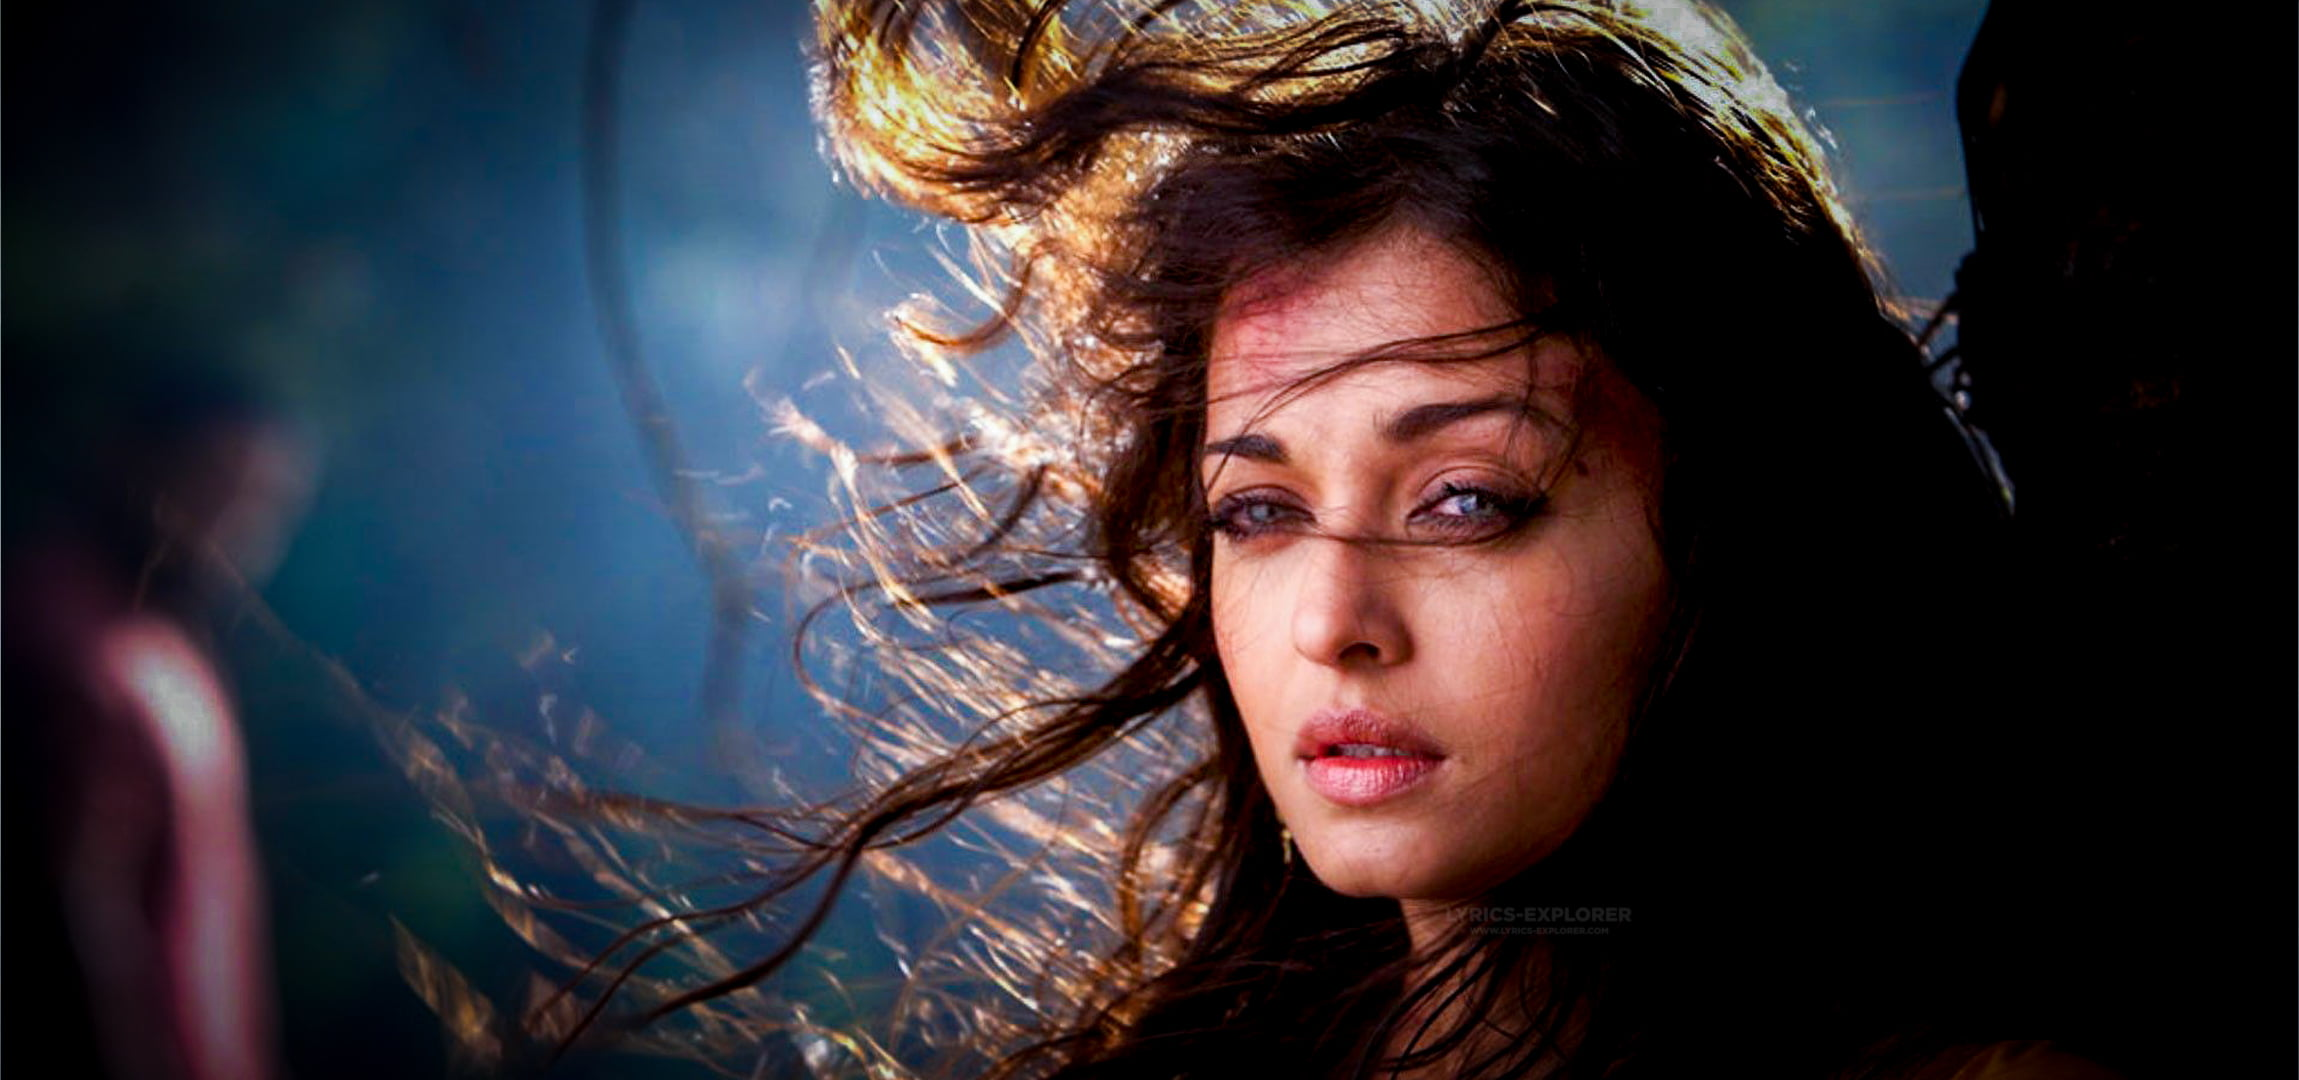 You are currently viewing Kalvare Kalvare Song Lyrics Free Download